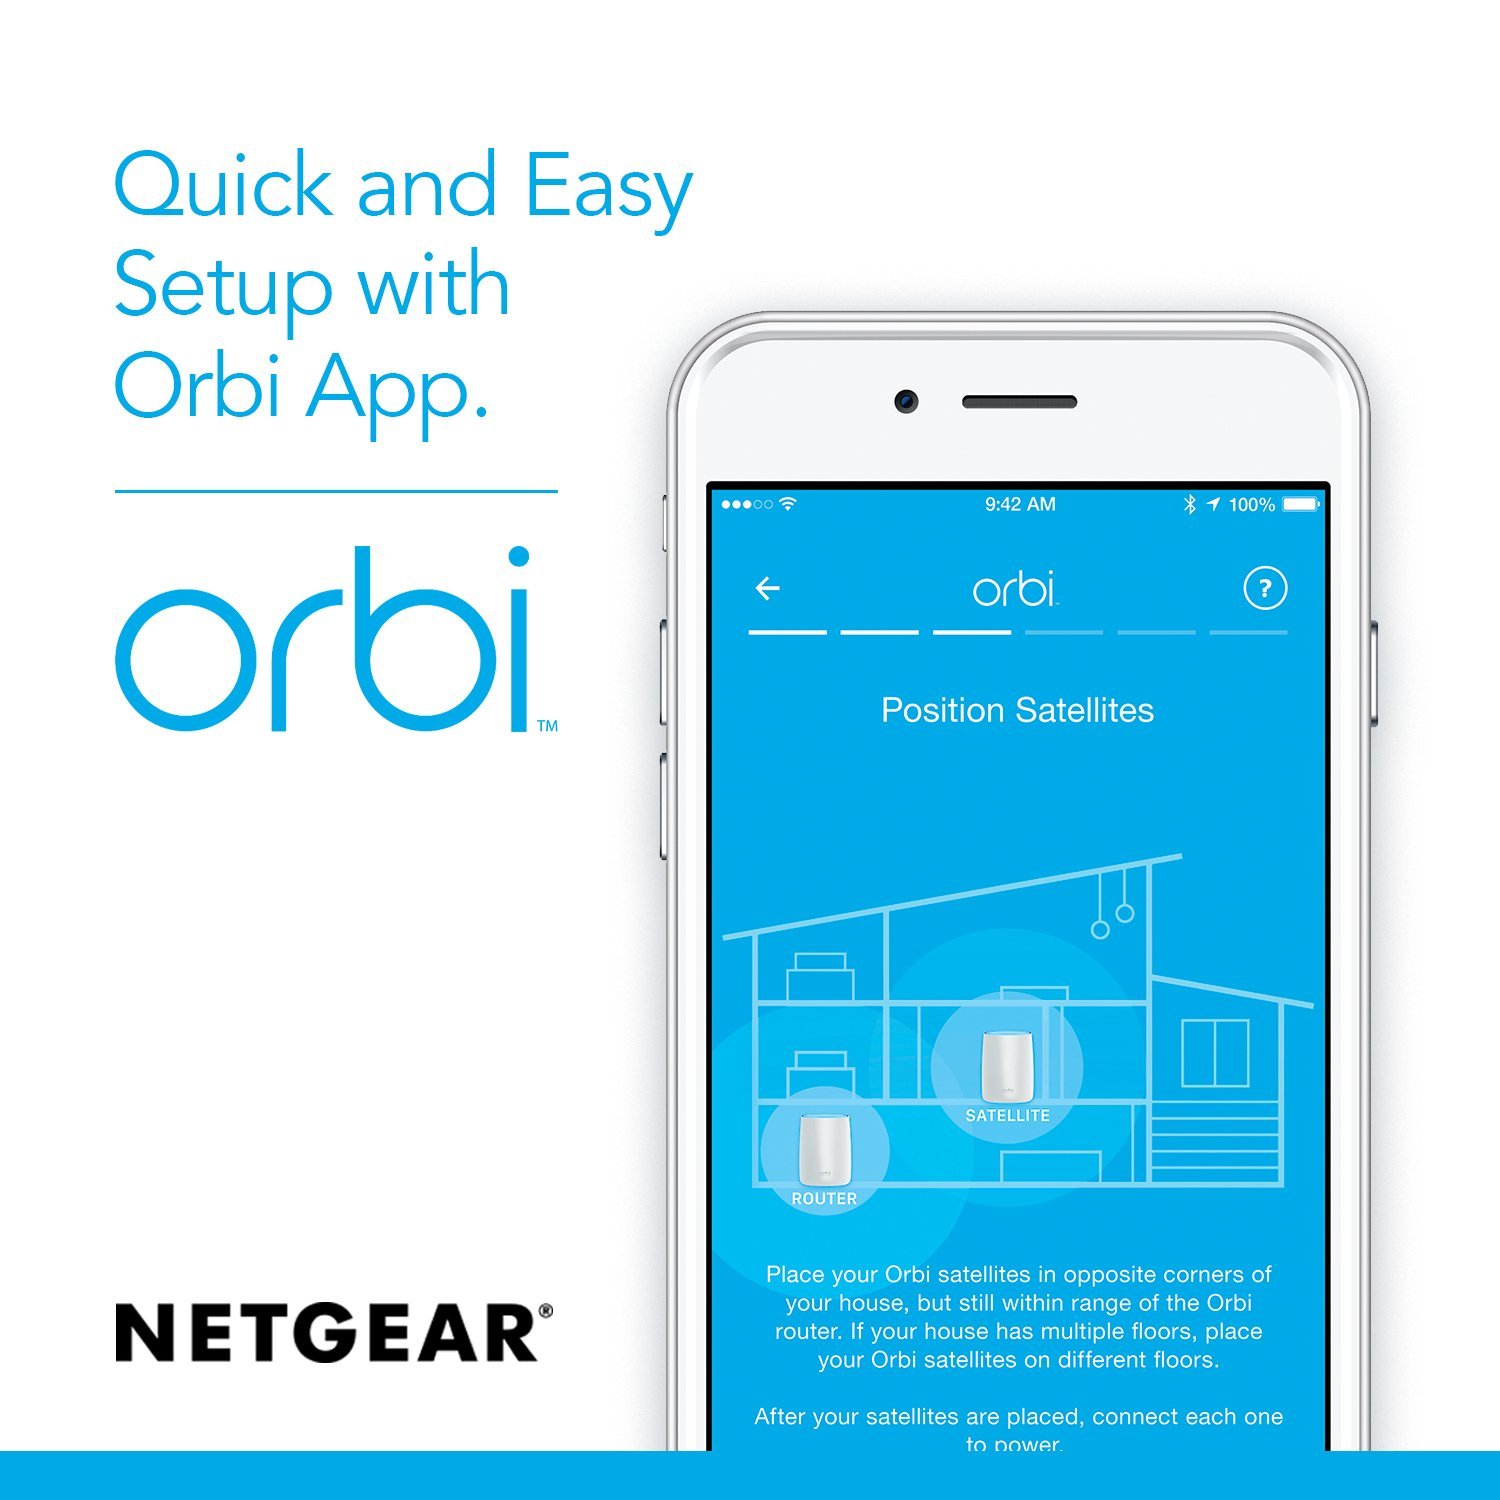 NETGEAR Orbi Whole Home Mesh WiFi System with Tri-band – Eliminate WiFi dead zones, Simple setup, Single network name, Works with Amazon Alexa, Up to 5,000 sqft, AC3000 (Set of 2) by NETGEAR (Image #4)